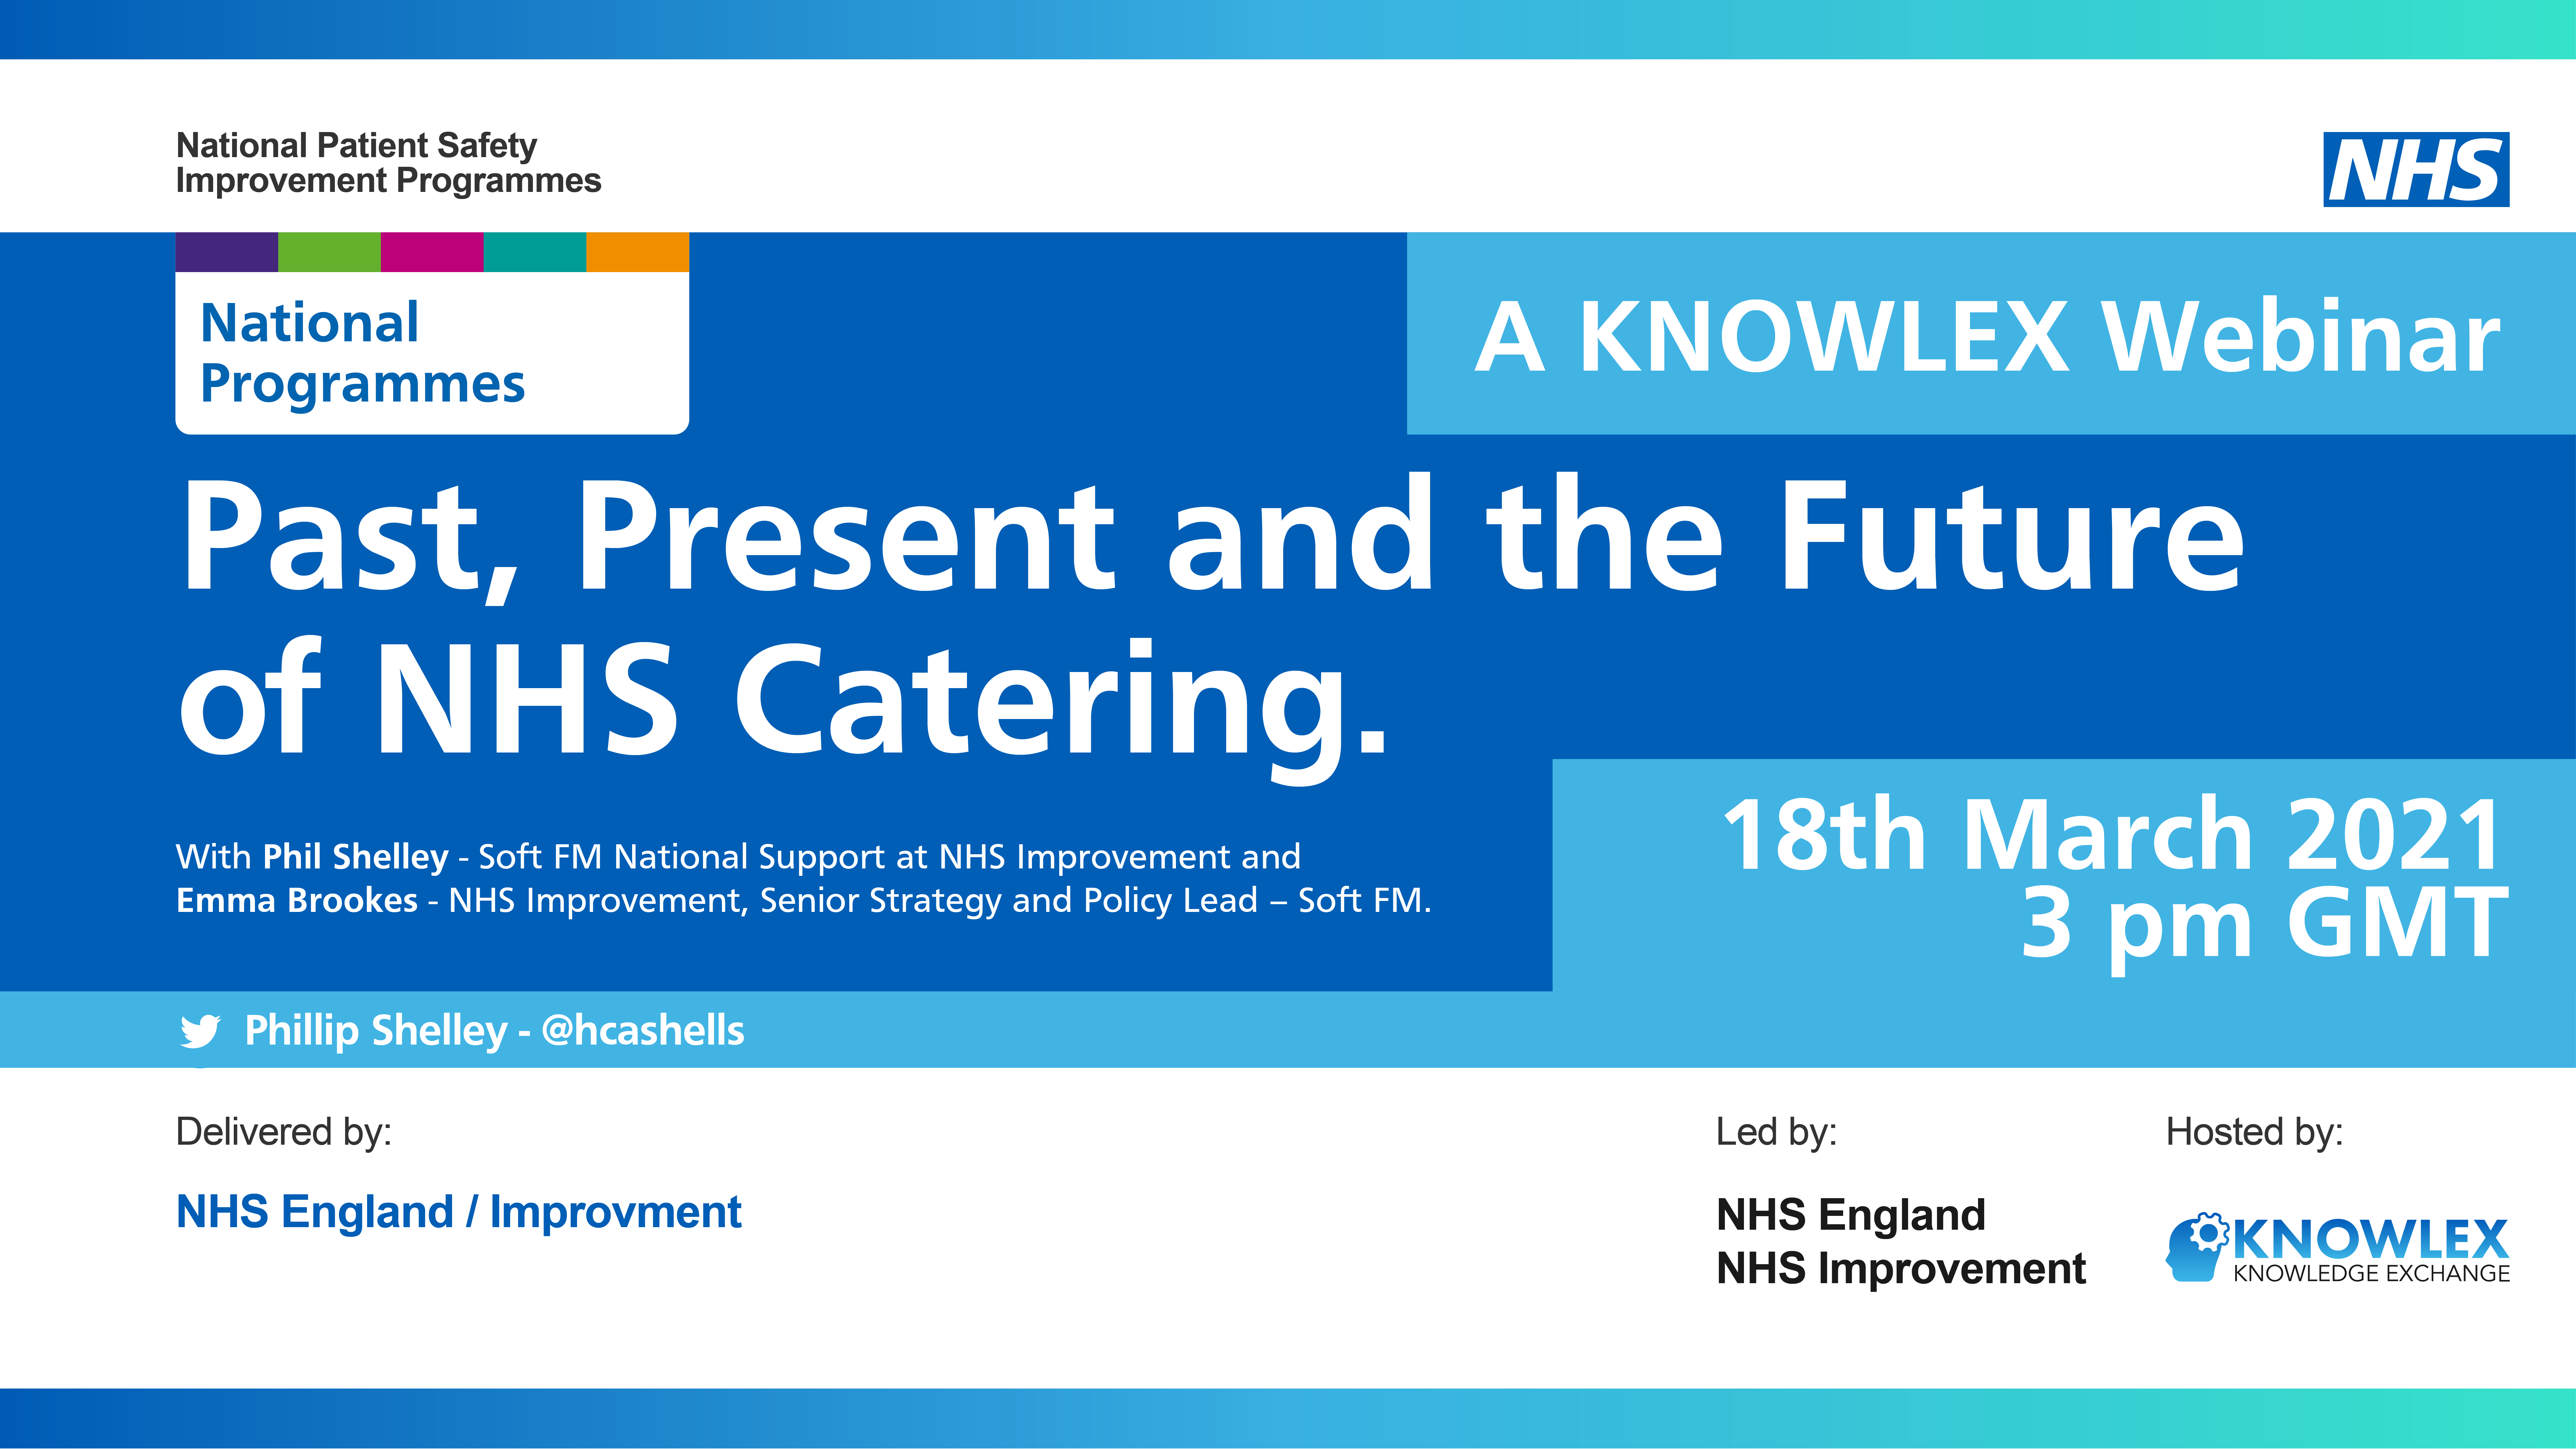 Philip Shelley and Emma Brookes will be presenting this webinar on Past, Present and the Future of NHS Catering